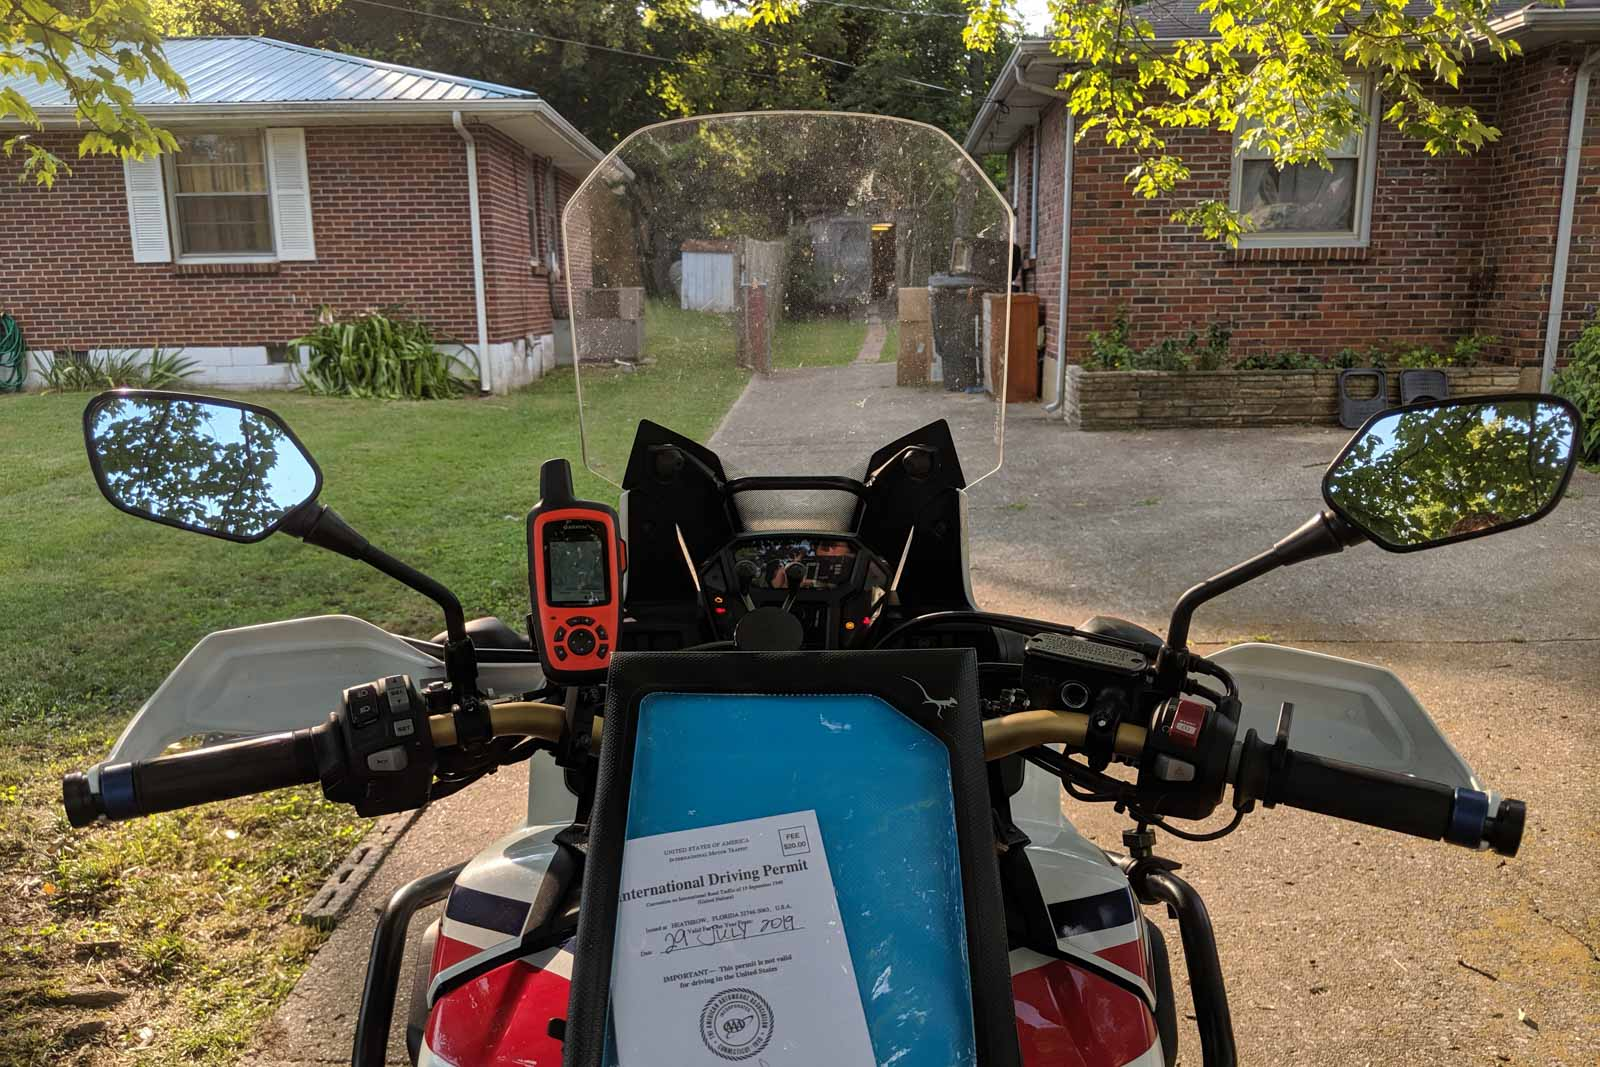 inreach_cockpit_motorcycle_home